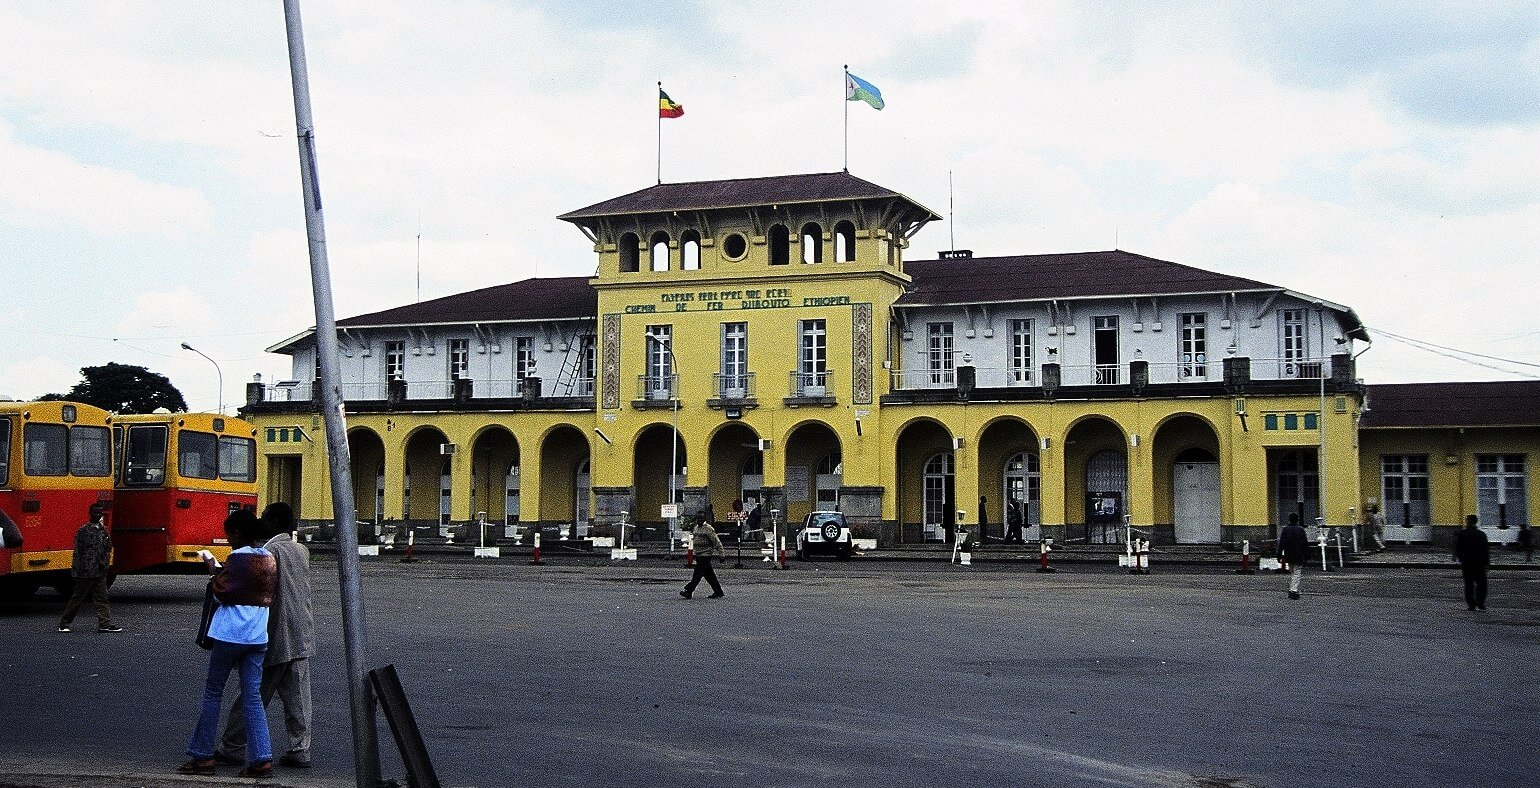 Ethiopia, Addis-Ababa train station